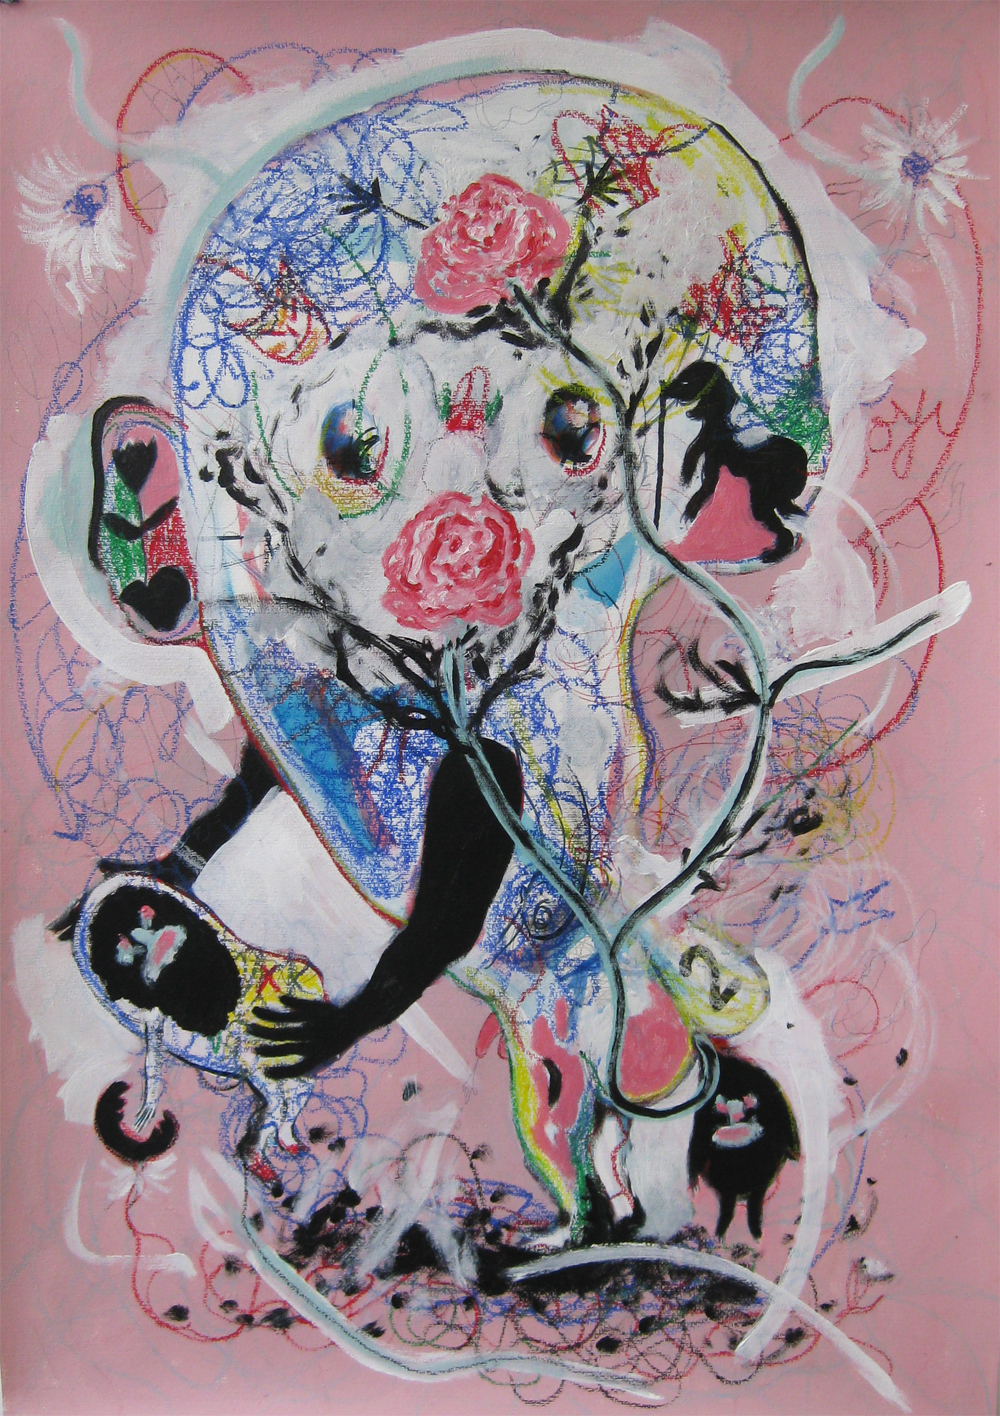 Birth of Joy  70 x 100   Mixed media on Paper